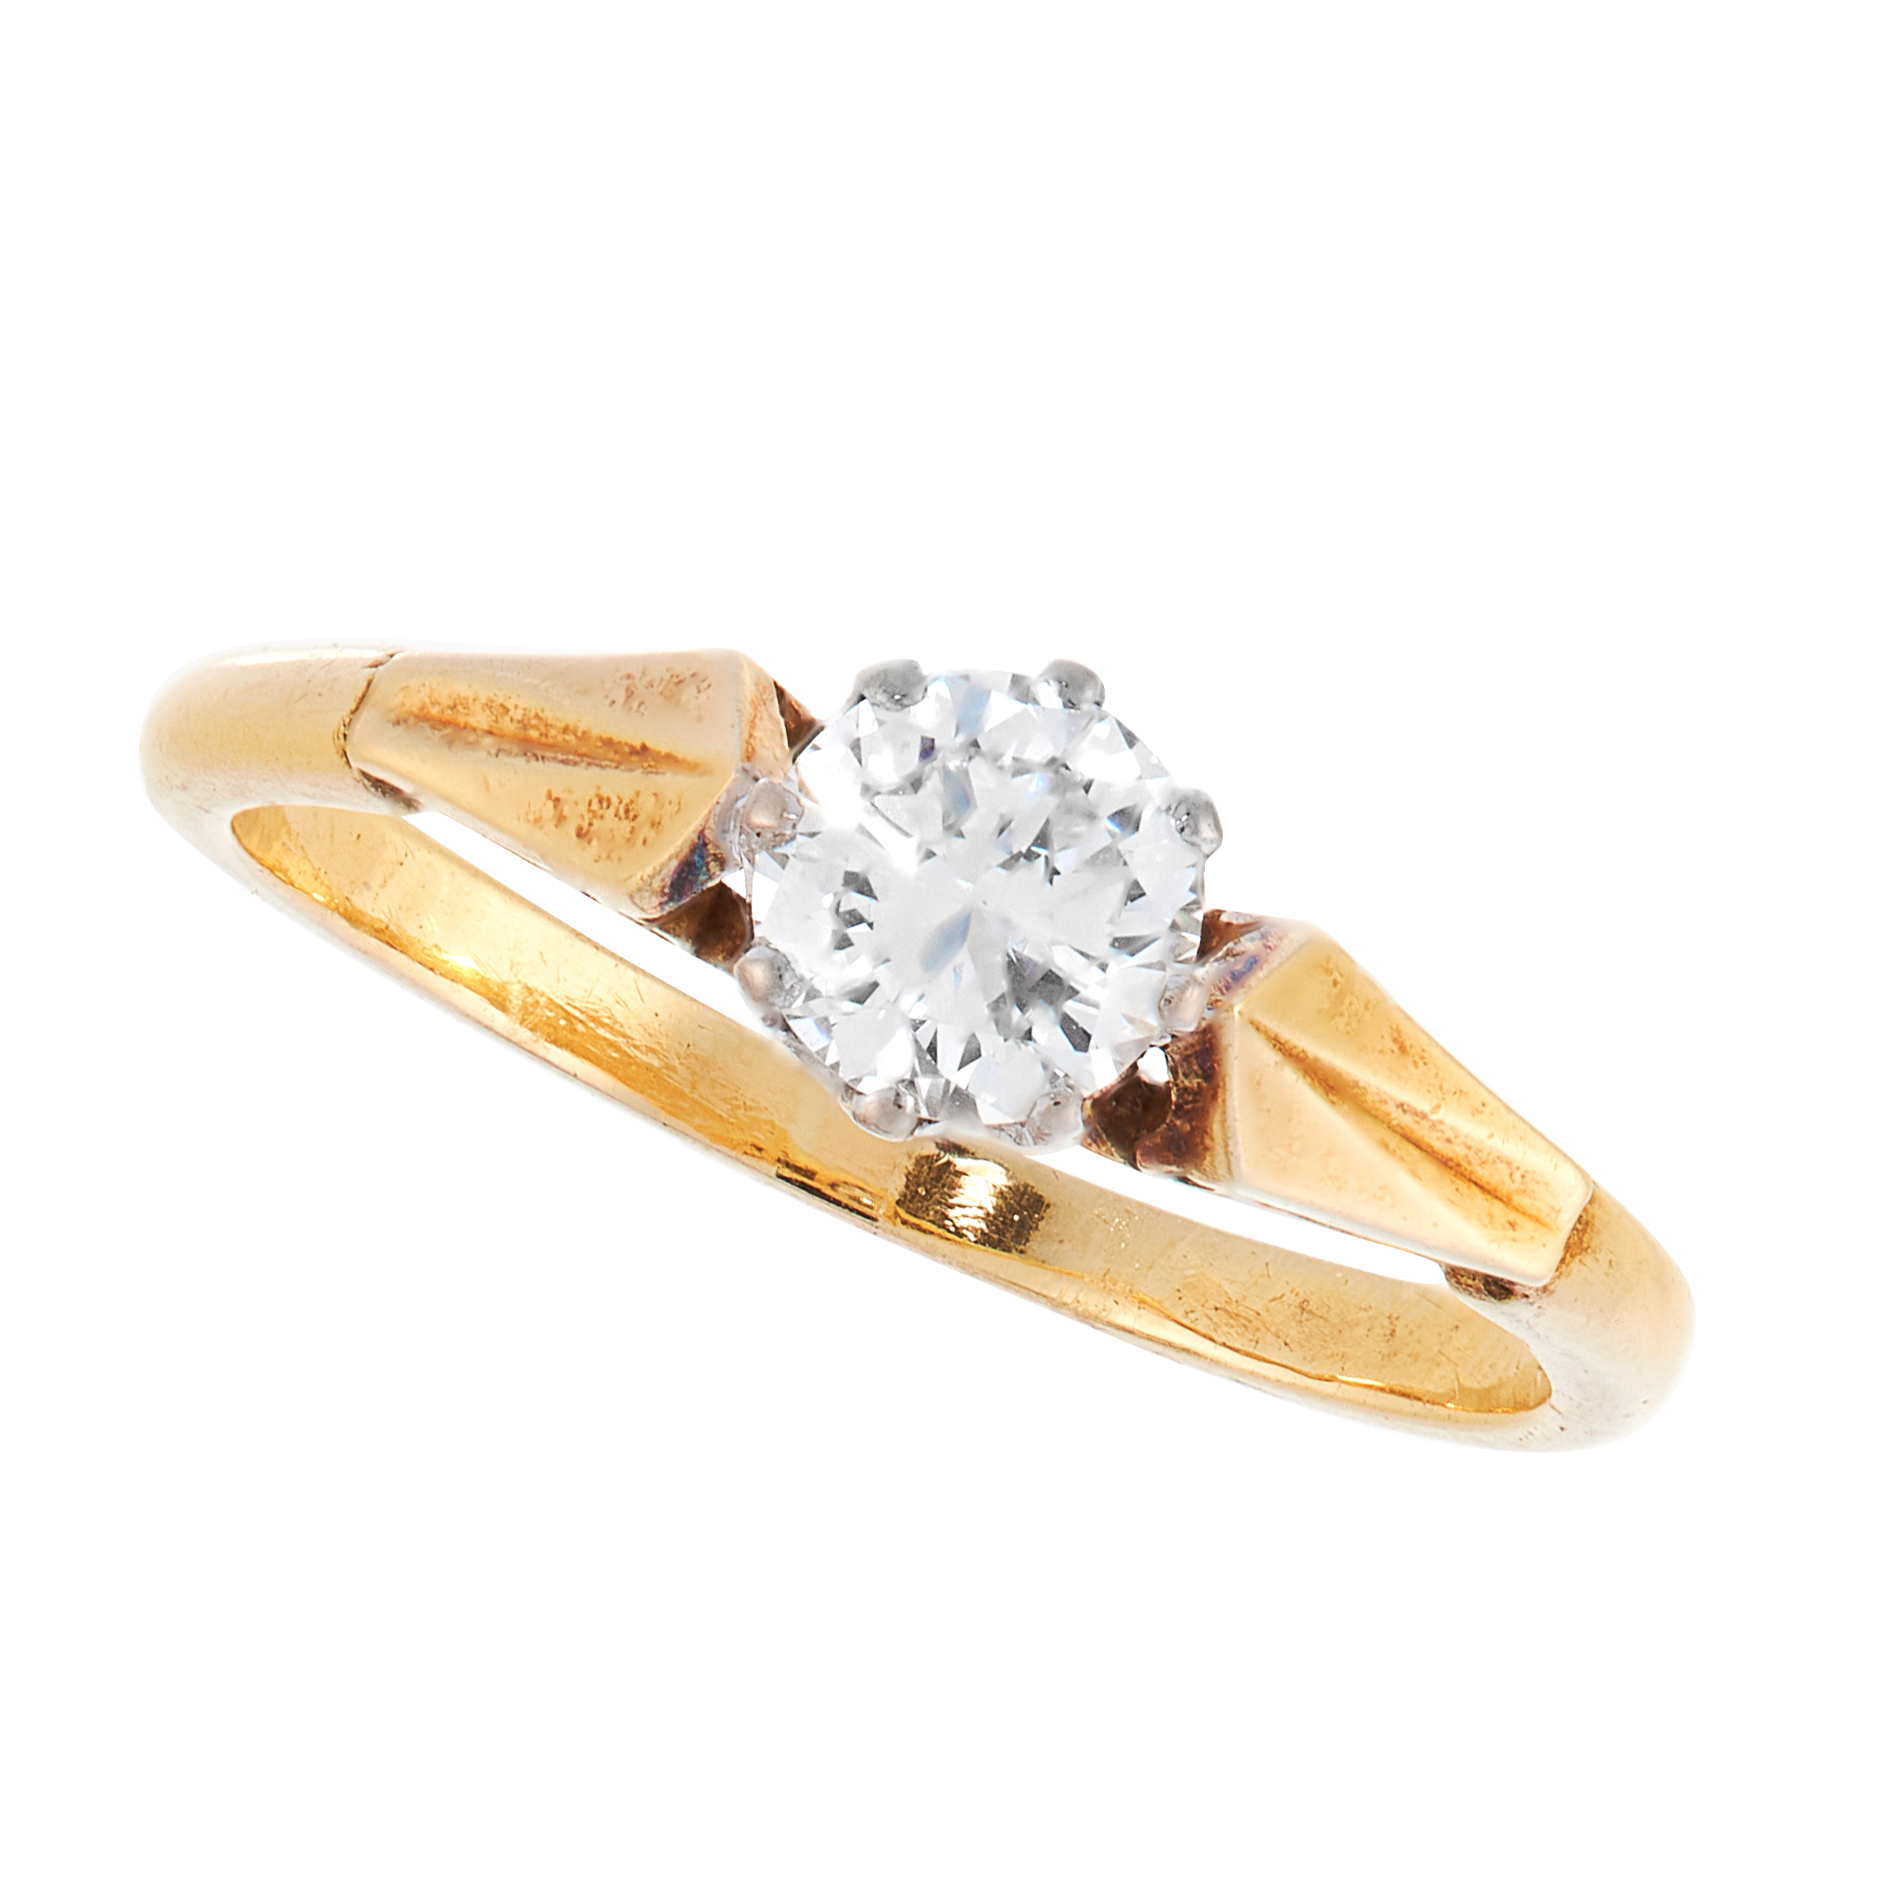 A SOLITAIRE DIAMOND DRESS RING in 18ct yellow gold, set with a round cut diamond of 0.61 carats,